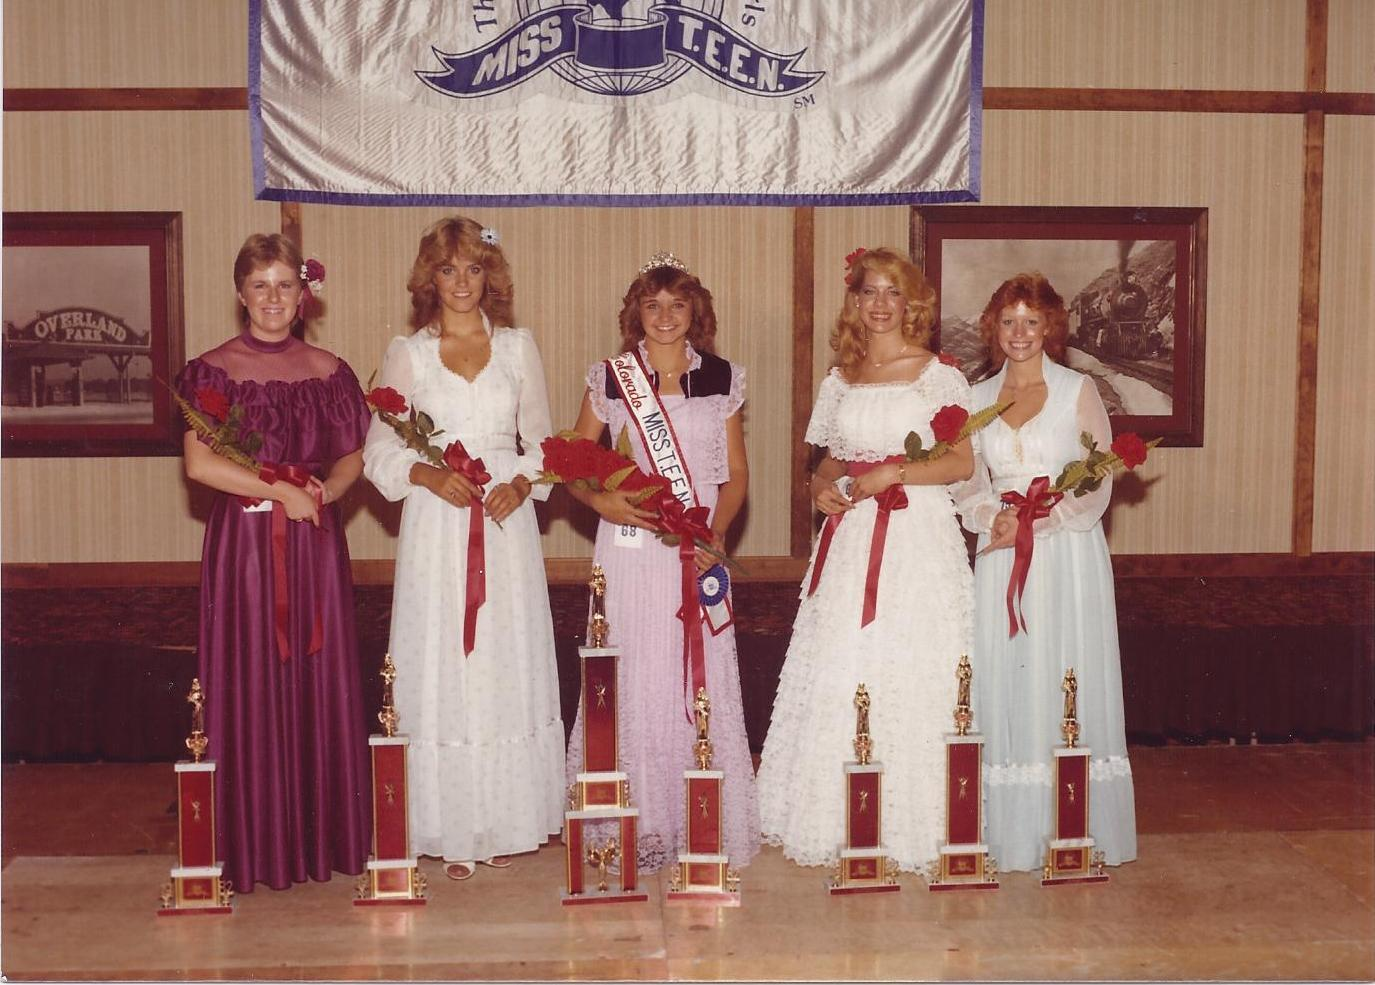 Miss T.E.E.N. Pageant, 1982